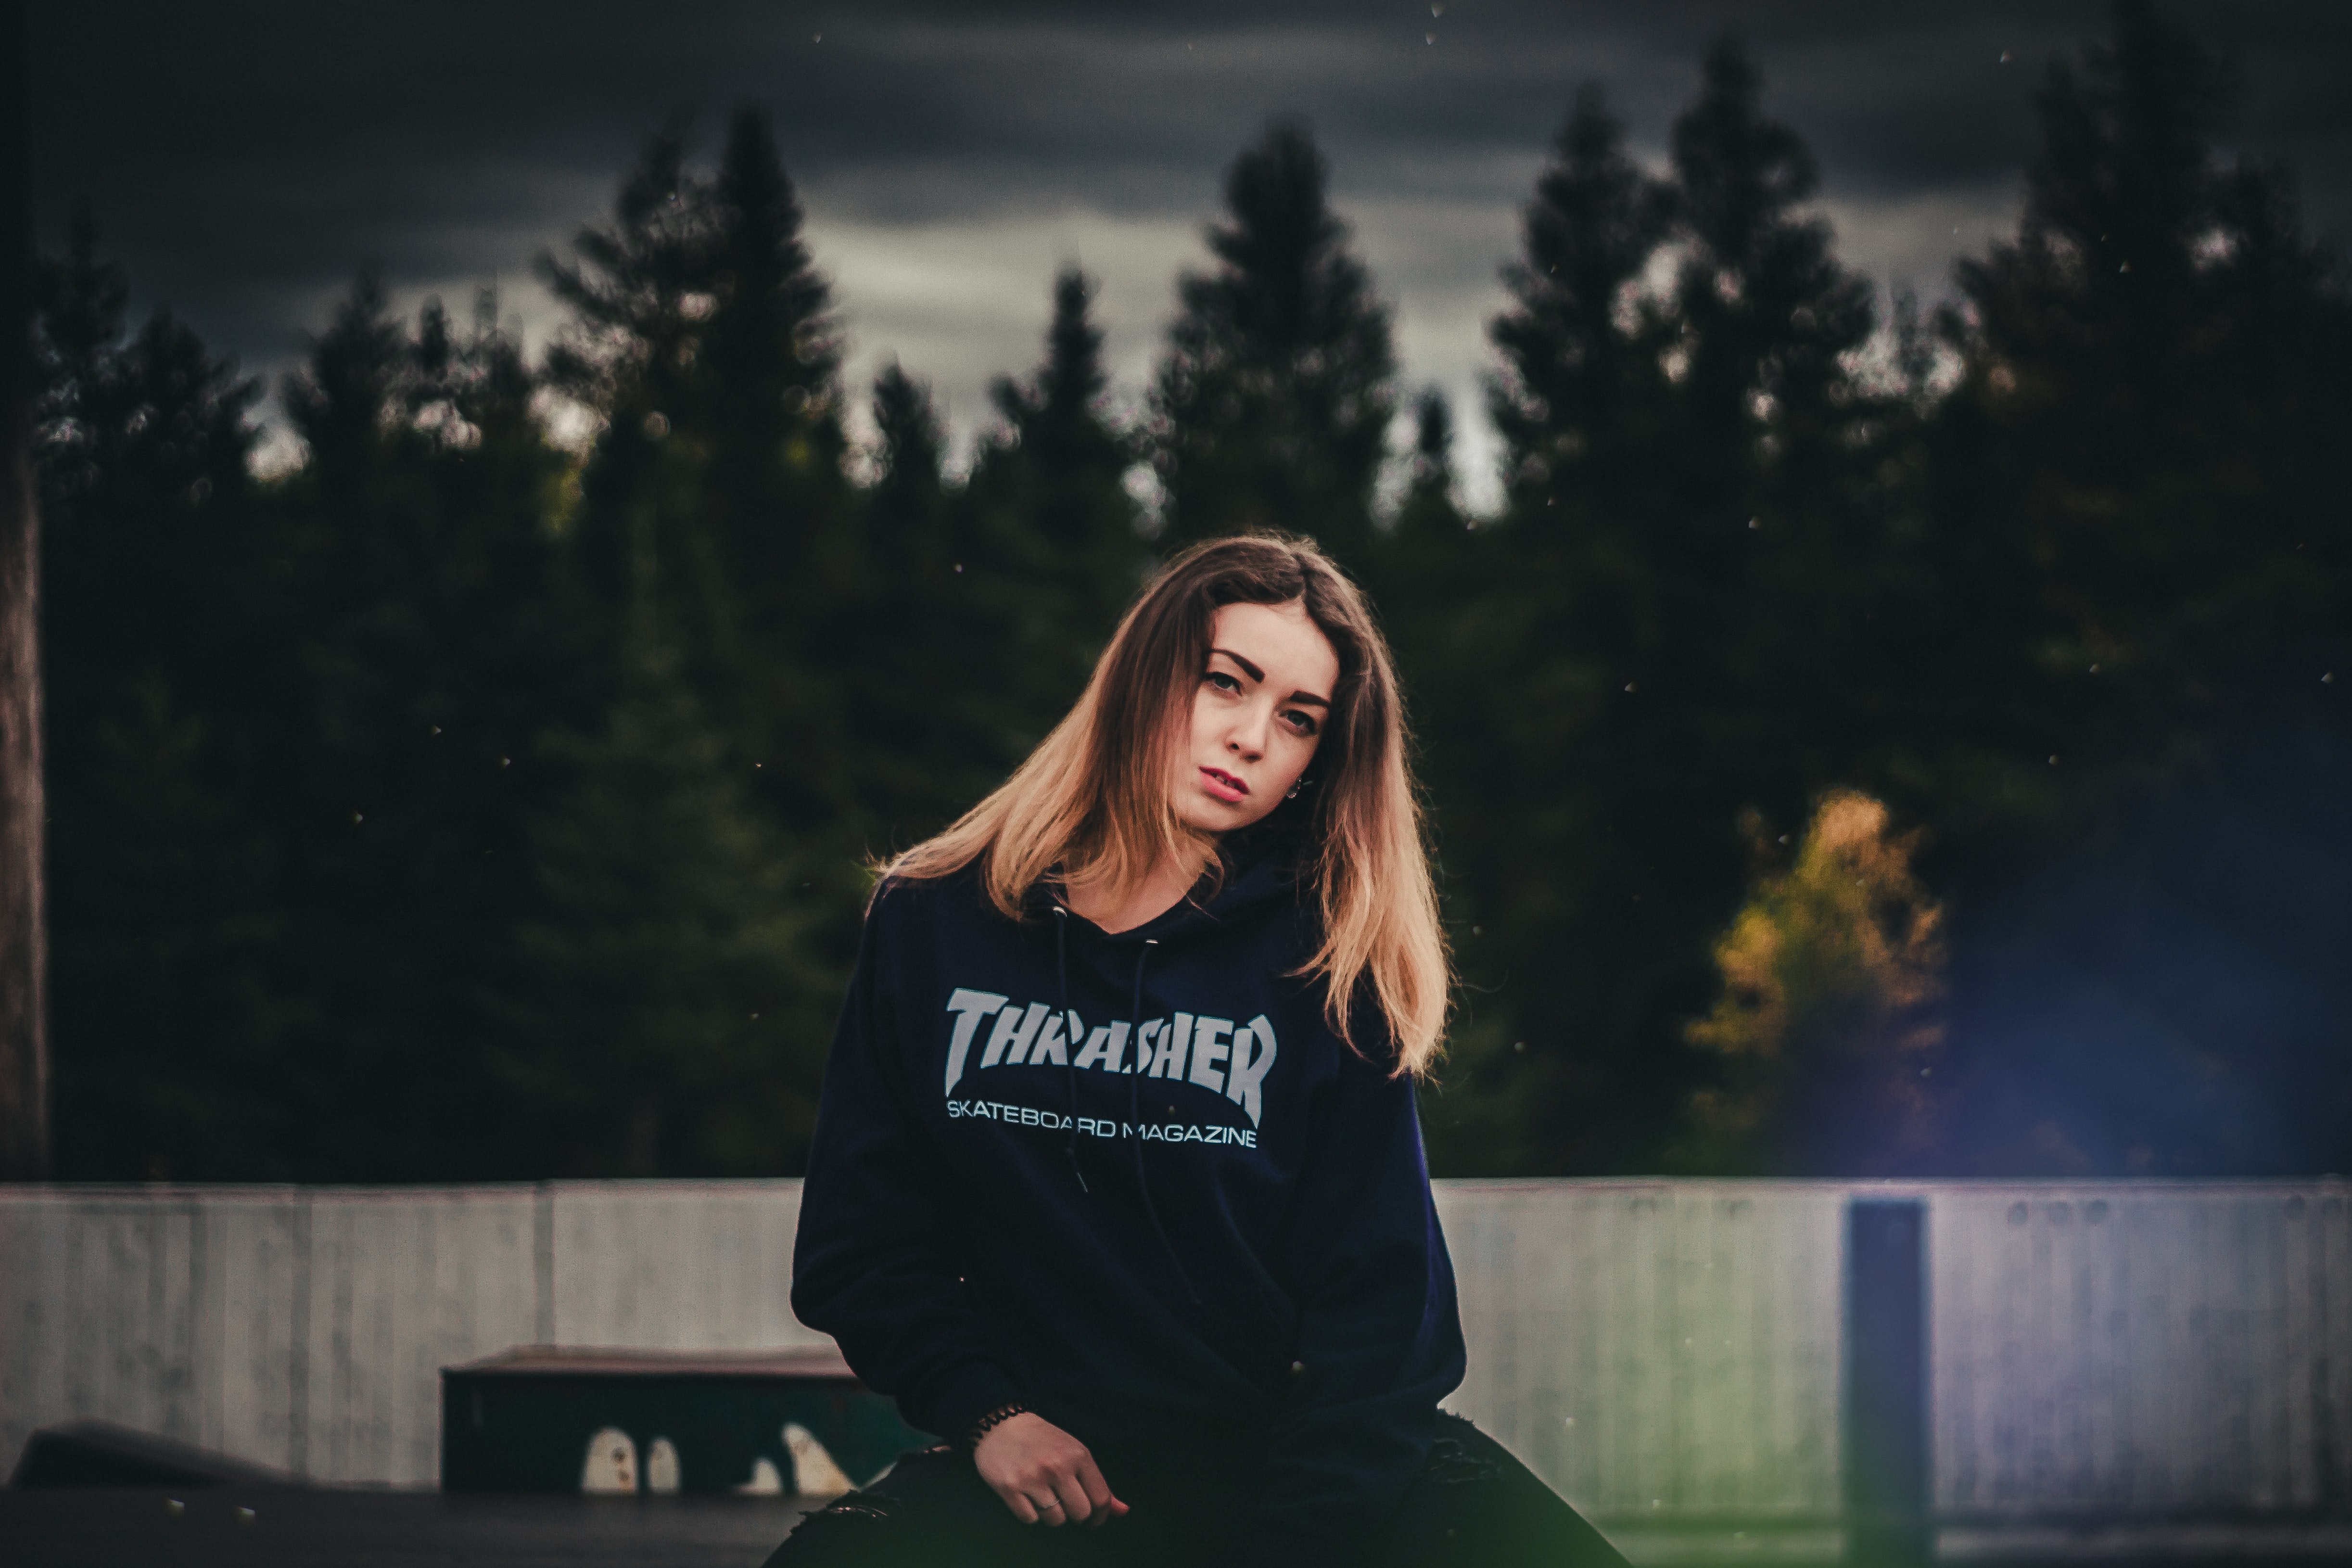 woman wearing Trasher pullover hoodie standing in front of concrete fence and trees